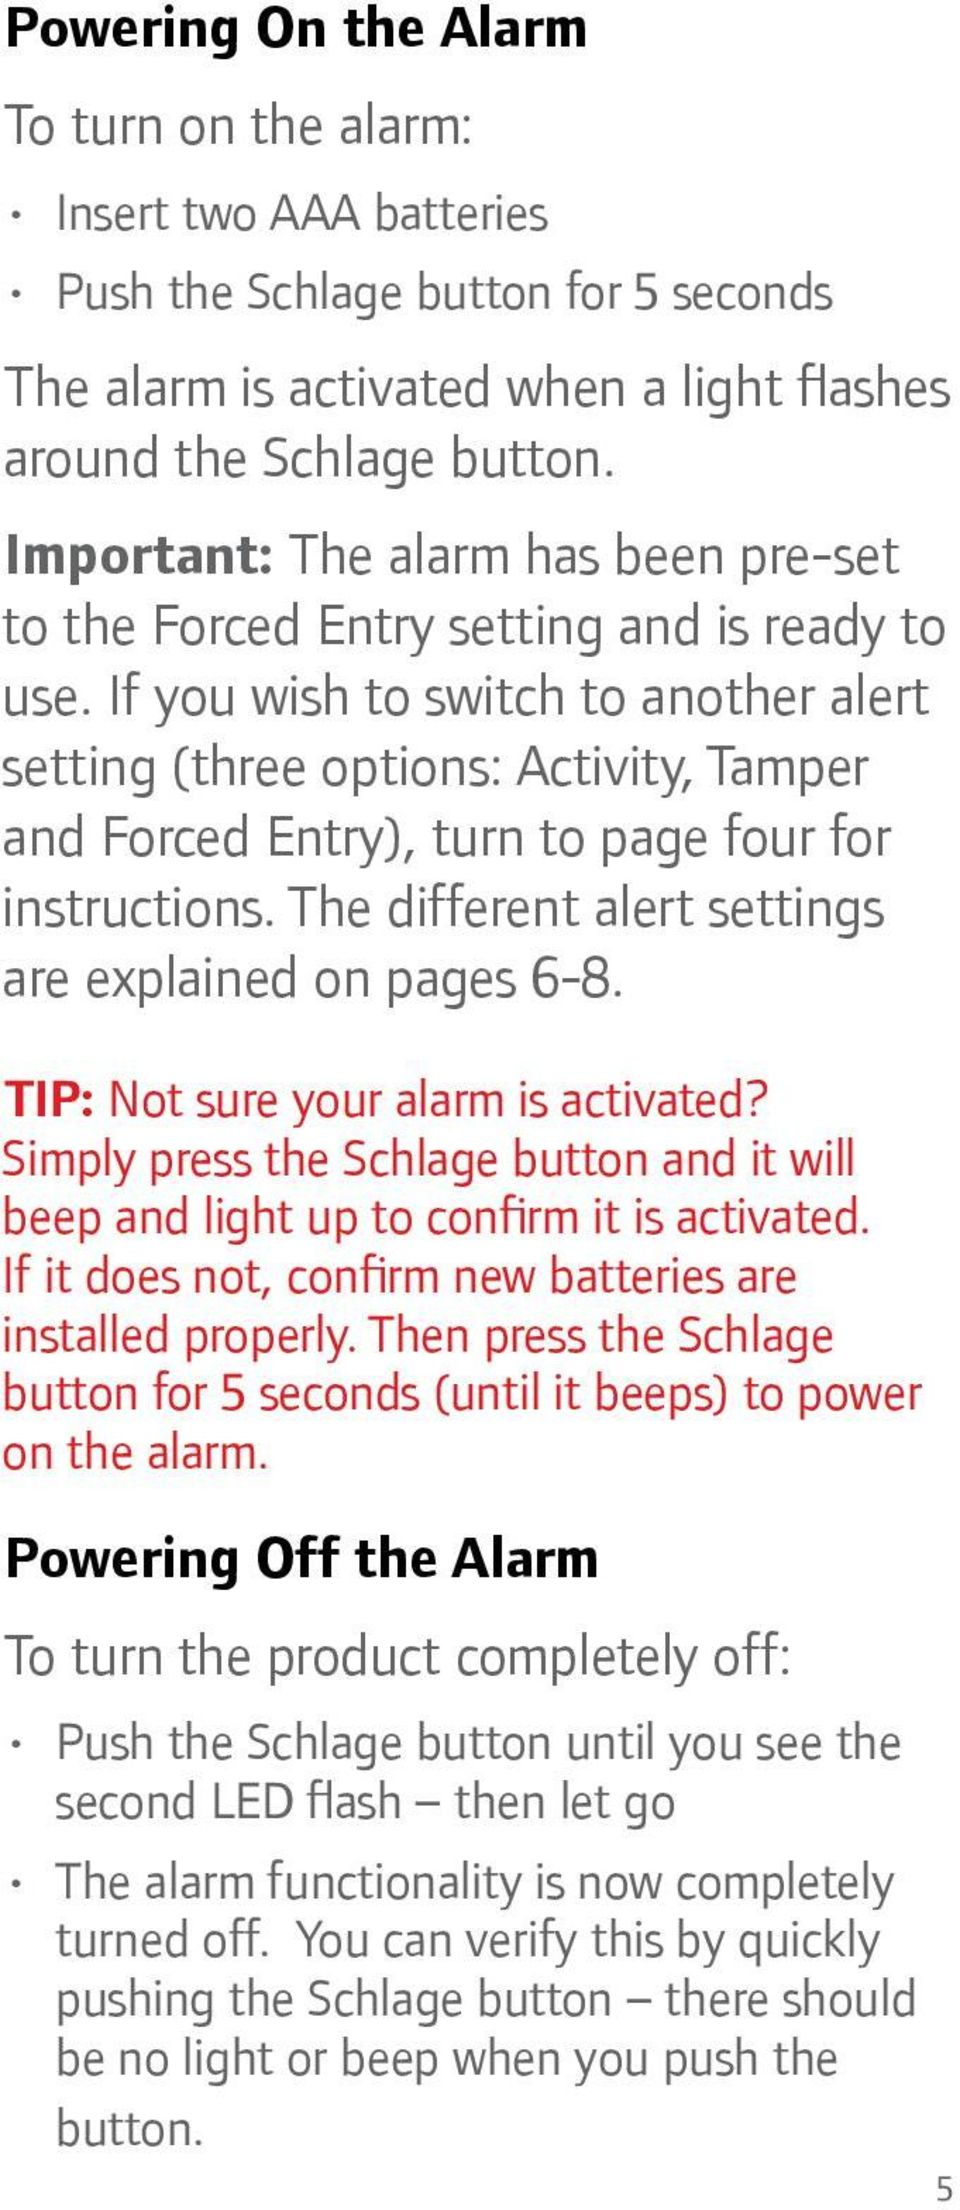 If you wish to switch to another alert setting (three options: Activity, Tamper and Forced Entry), turn to page four for instructions. The different alert settings are explained on pages 6-8.